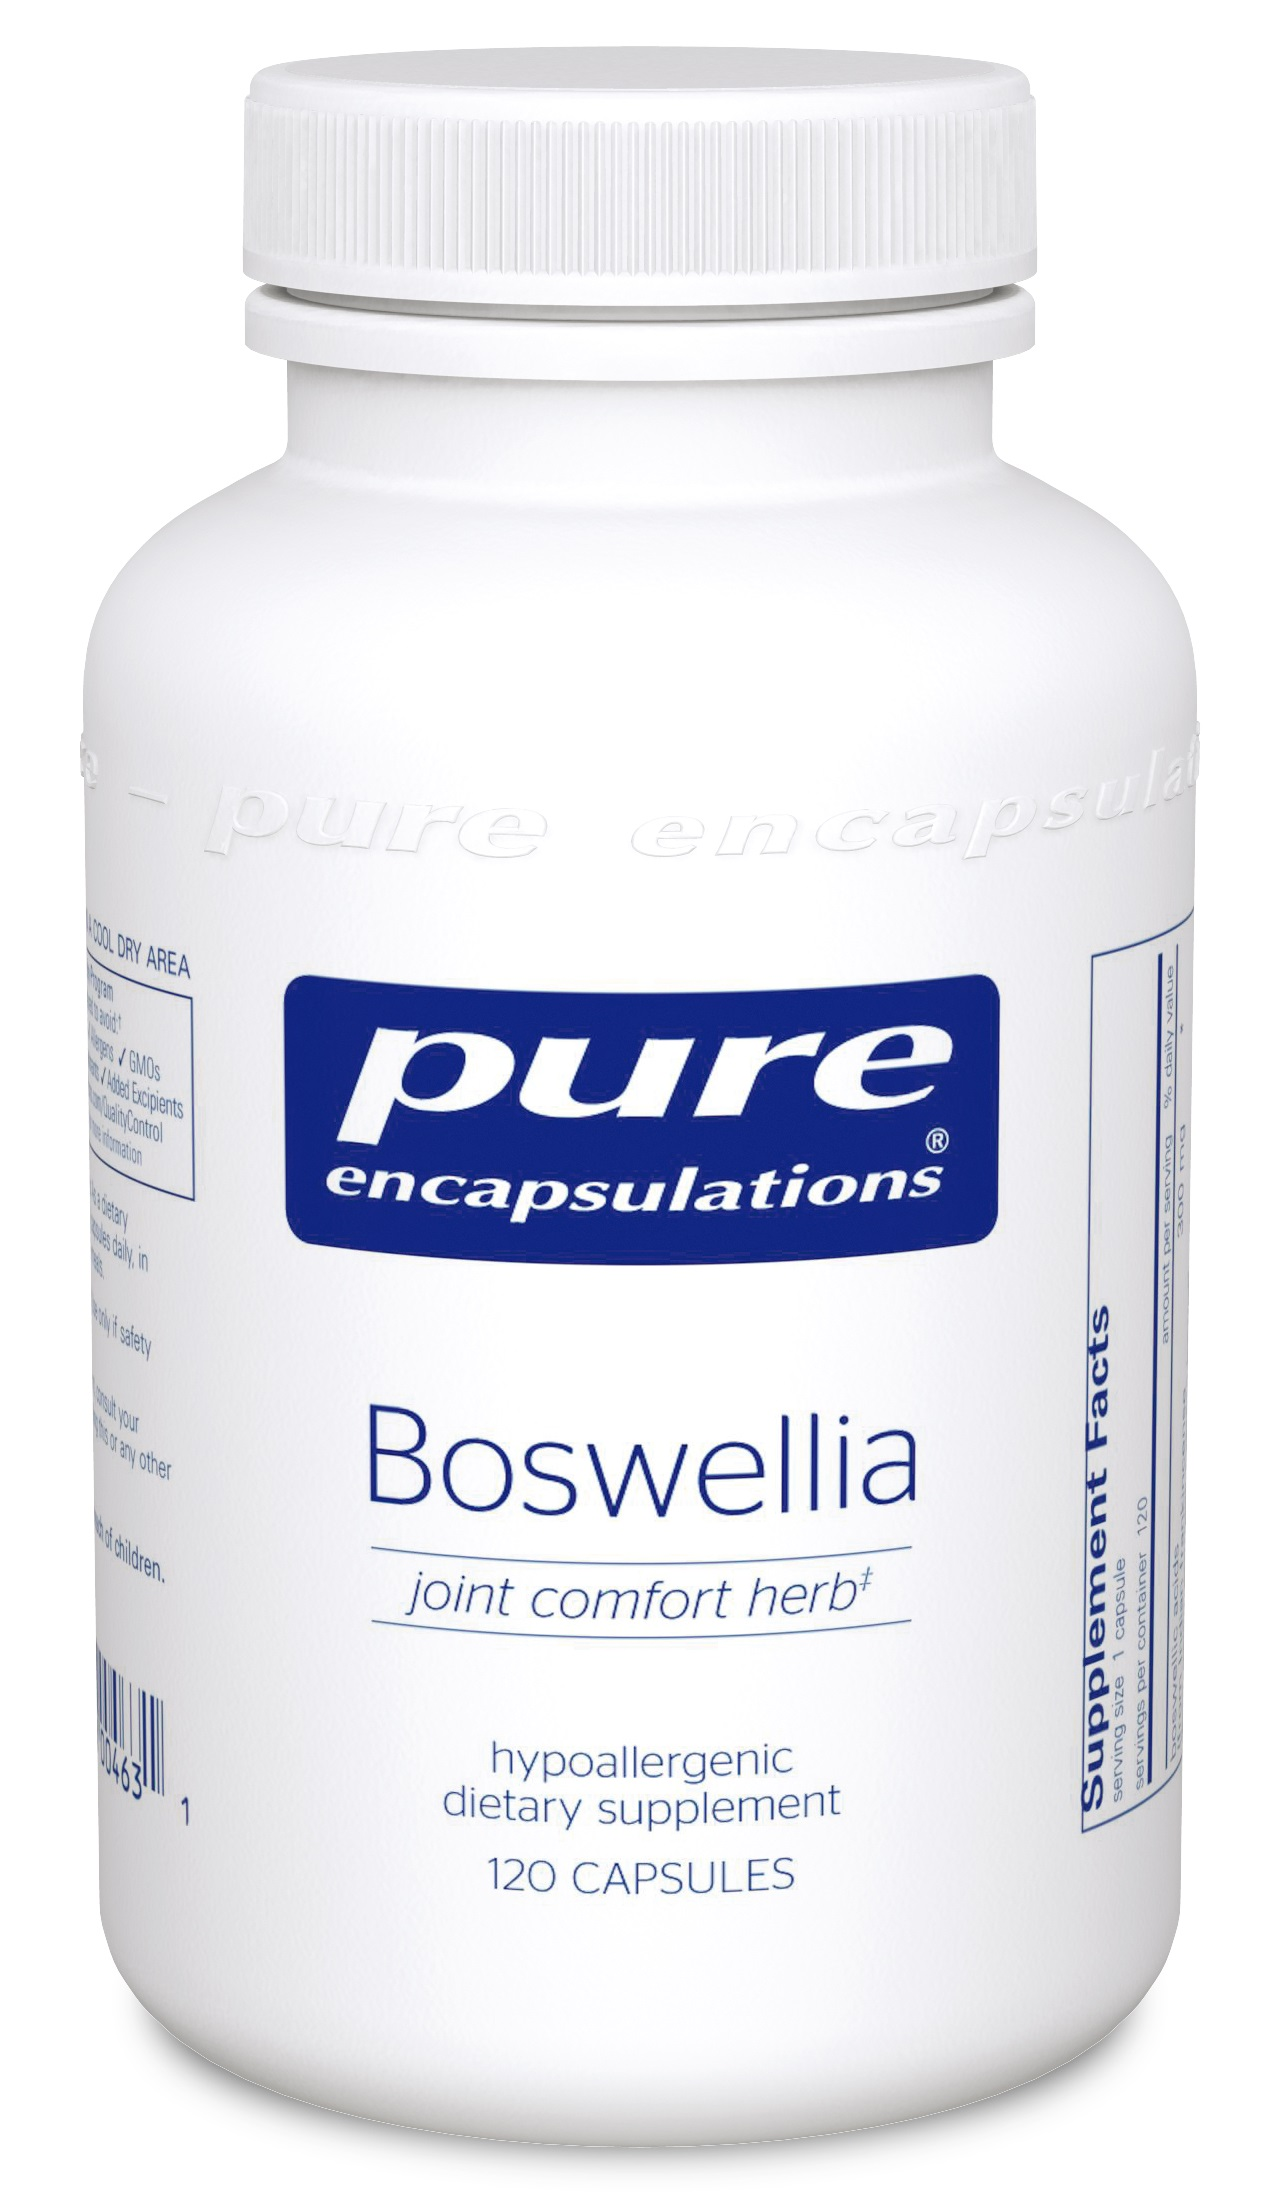 Pure Encapsulations Boswellia